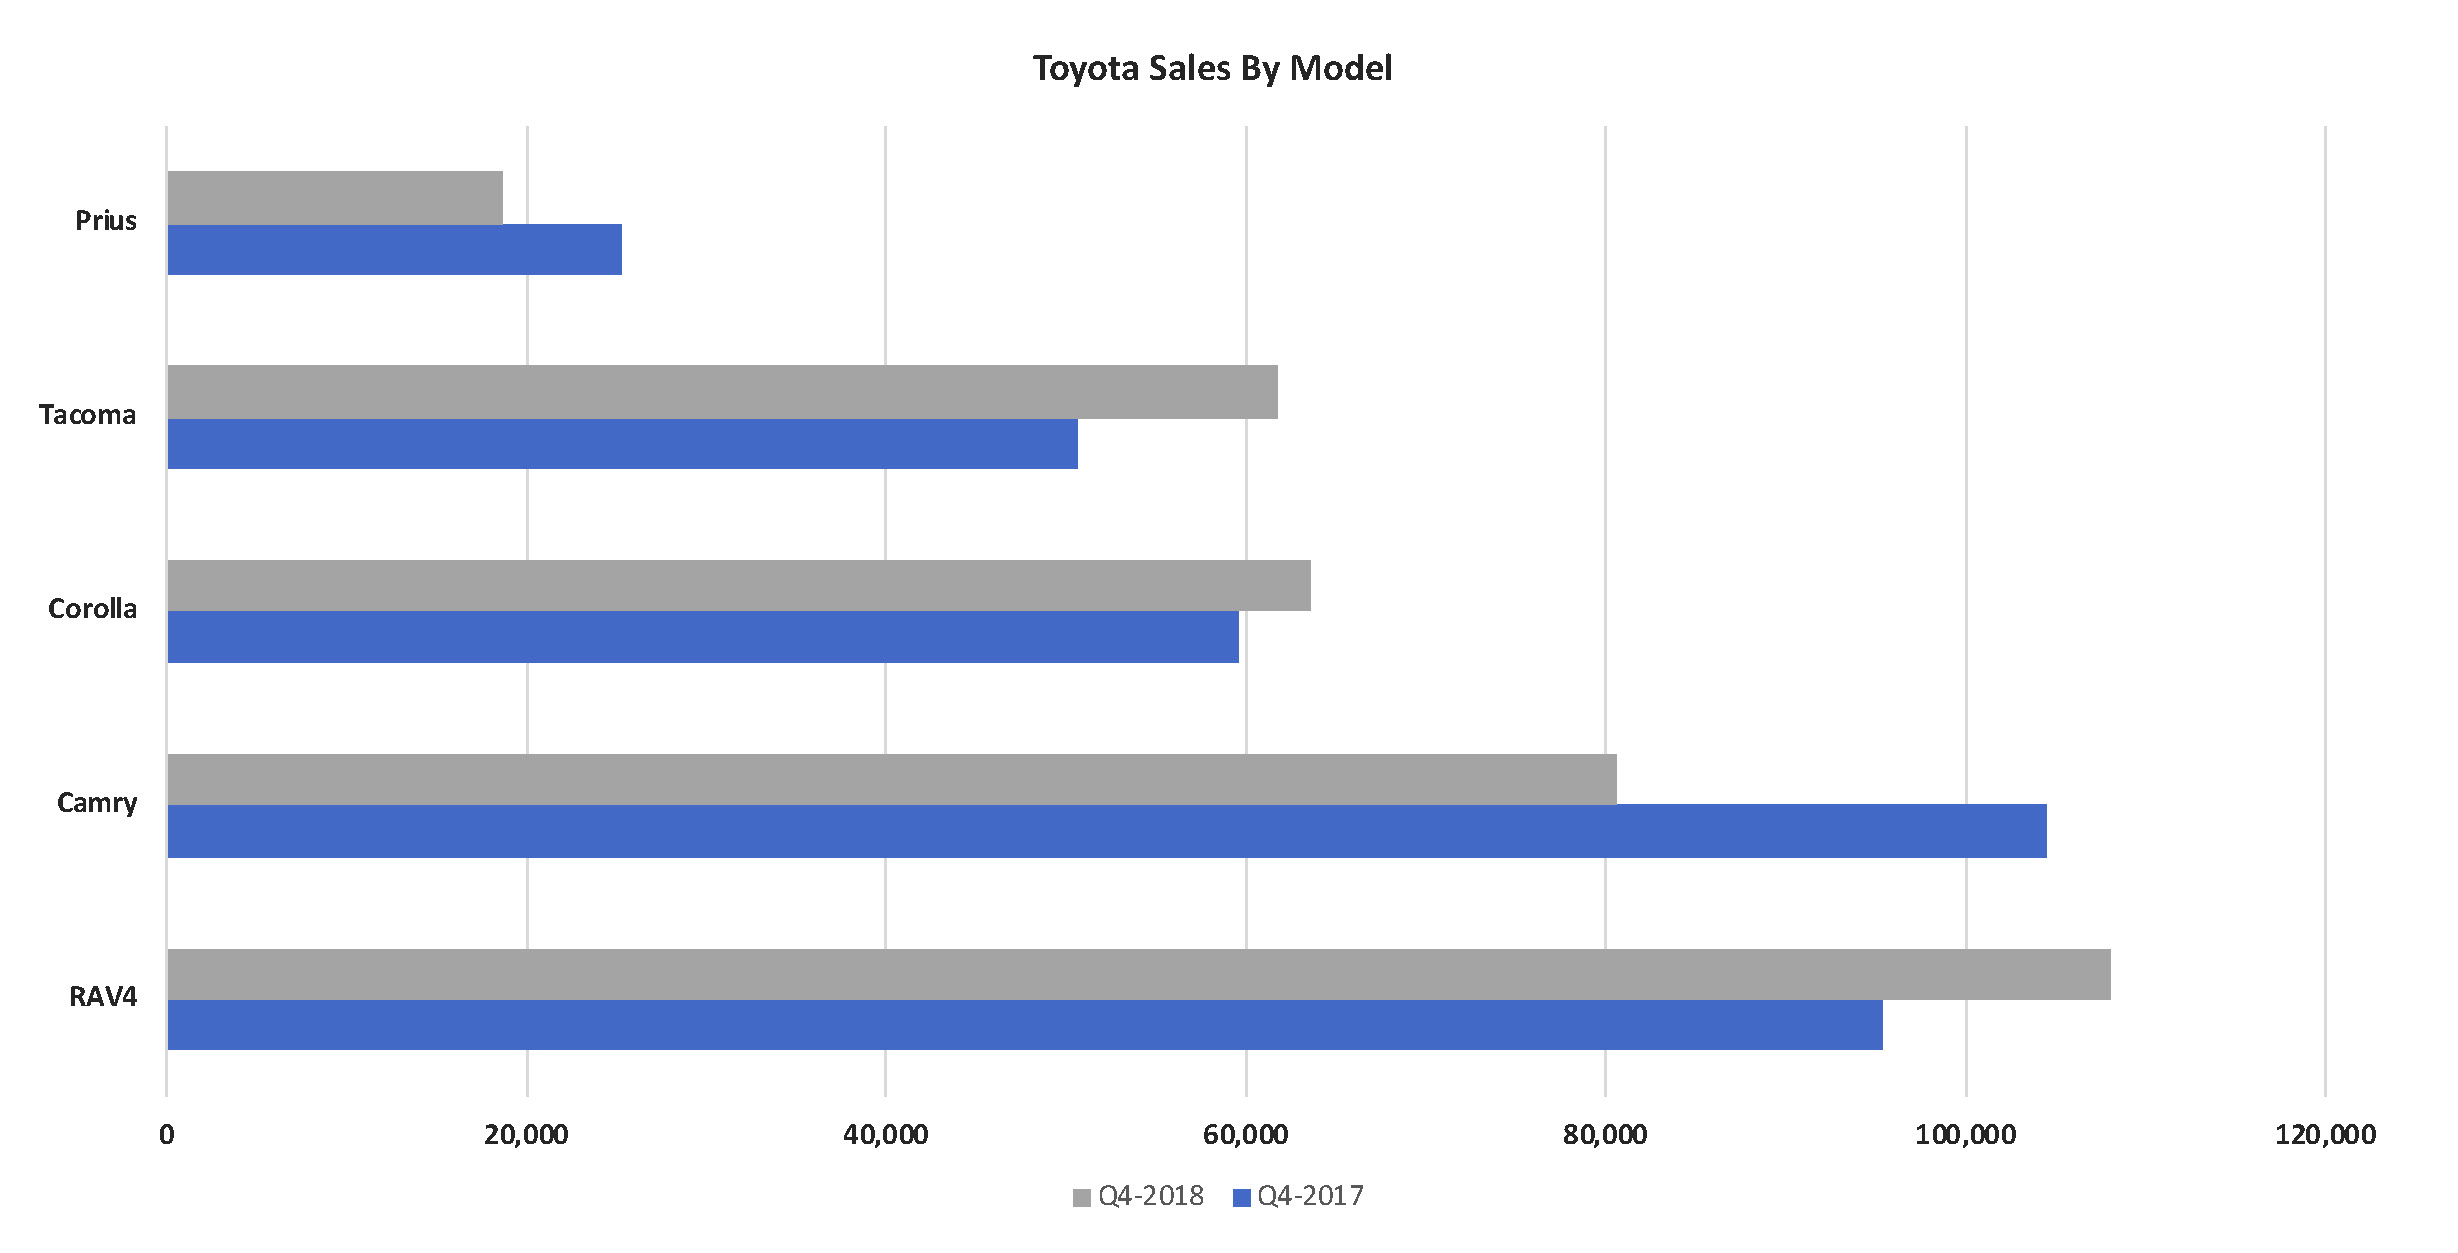 Toyota sales by model